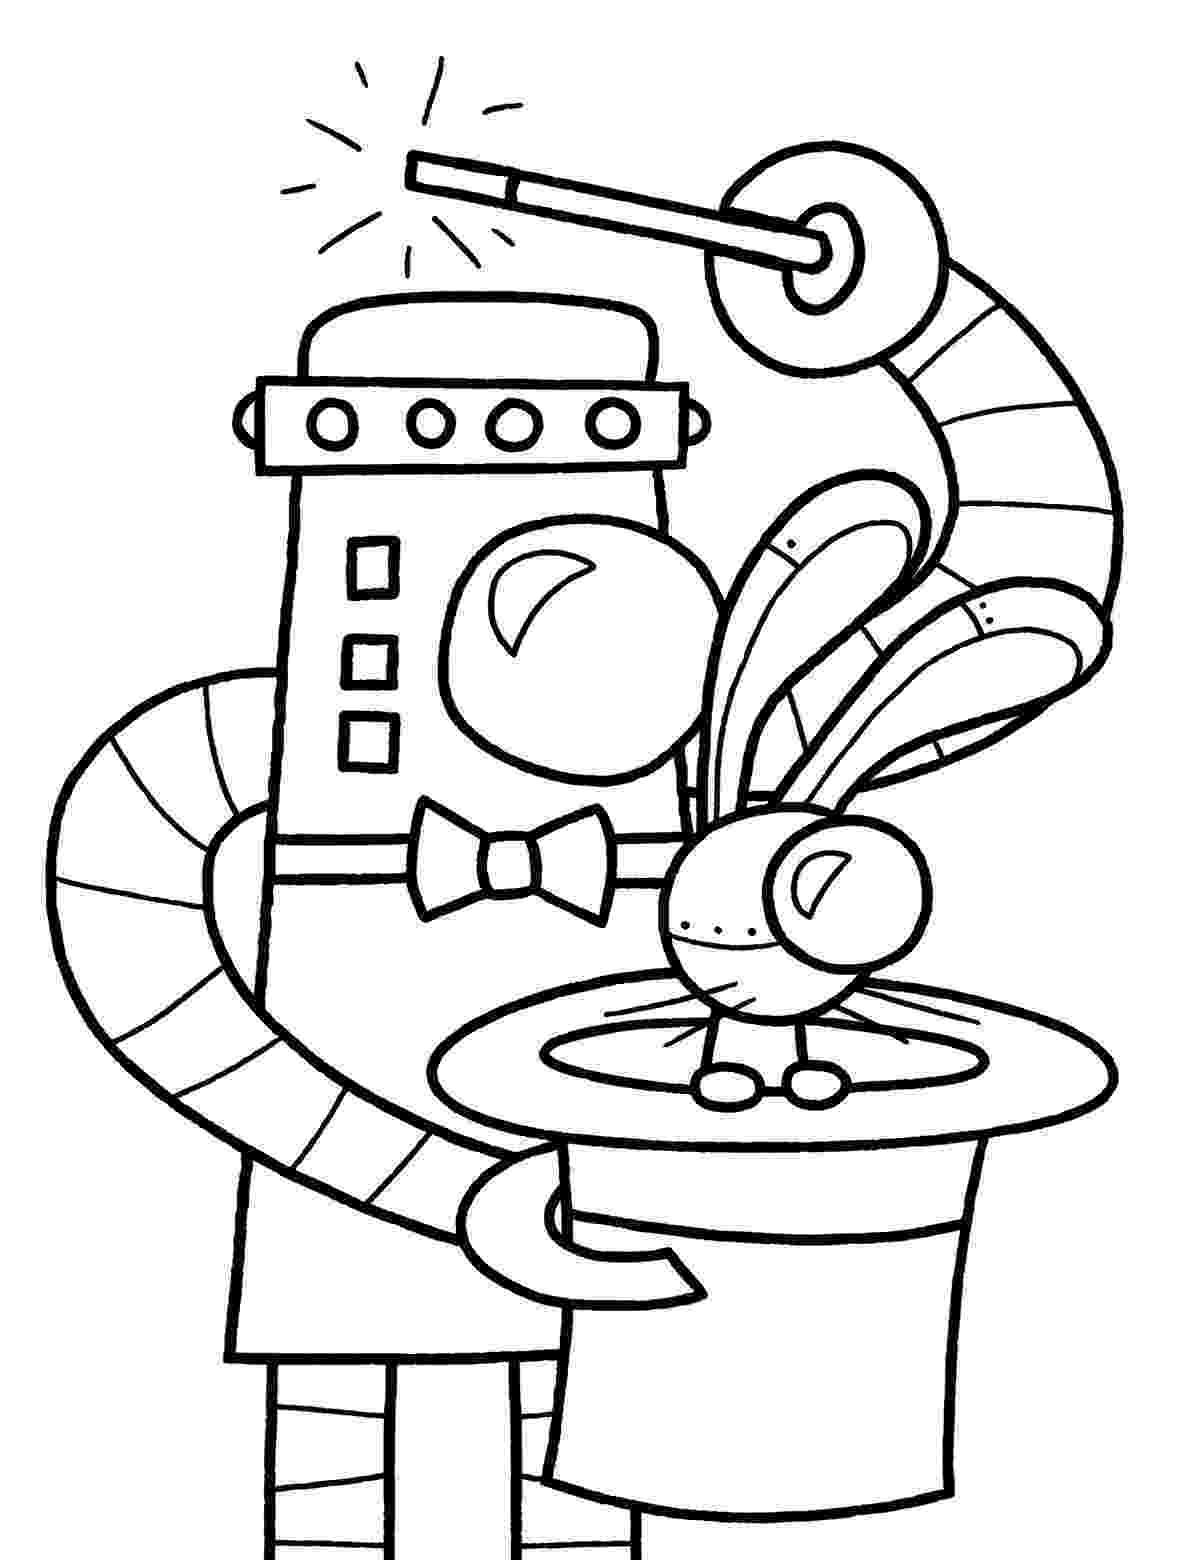 coloring page robot robot coloring pages 360coloringpages robot page coloring